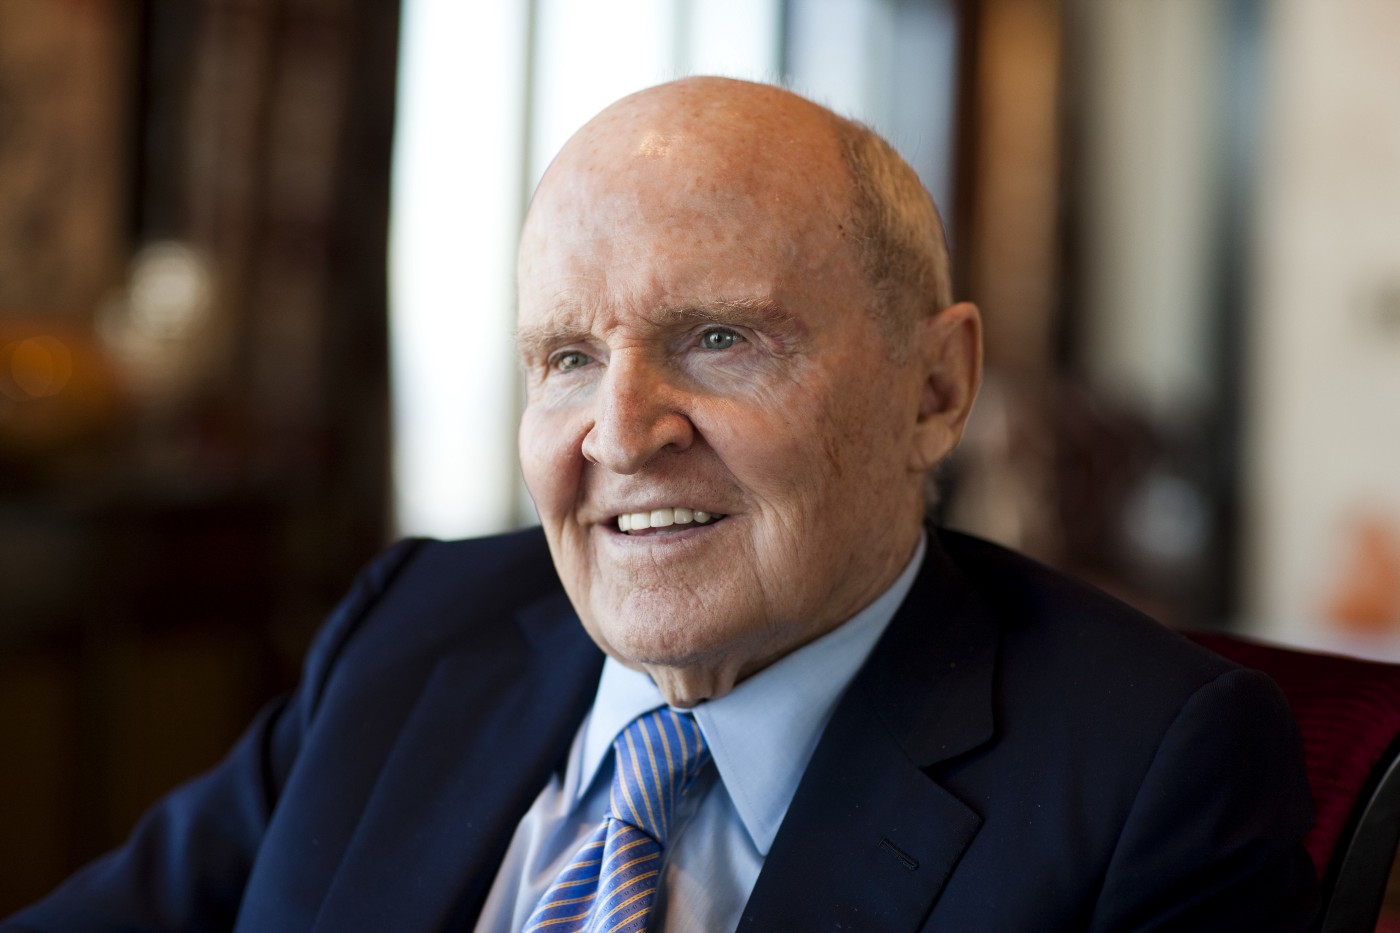 Jack Welch, former Chairman and CEO of General Electric, in his New York City apartment.